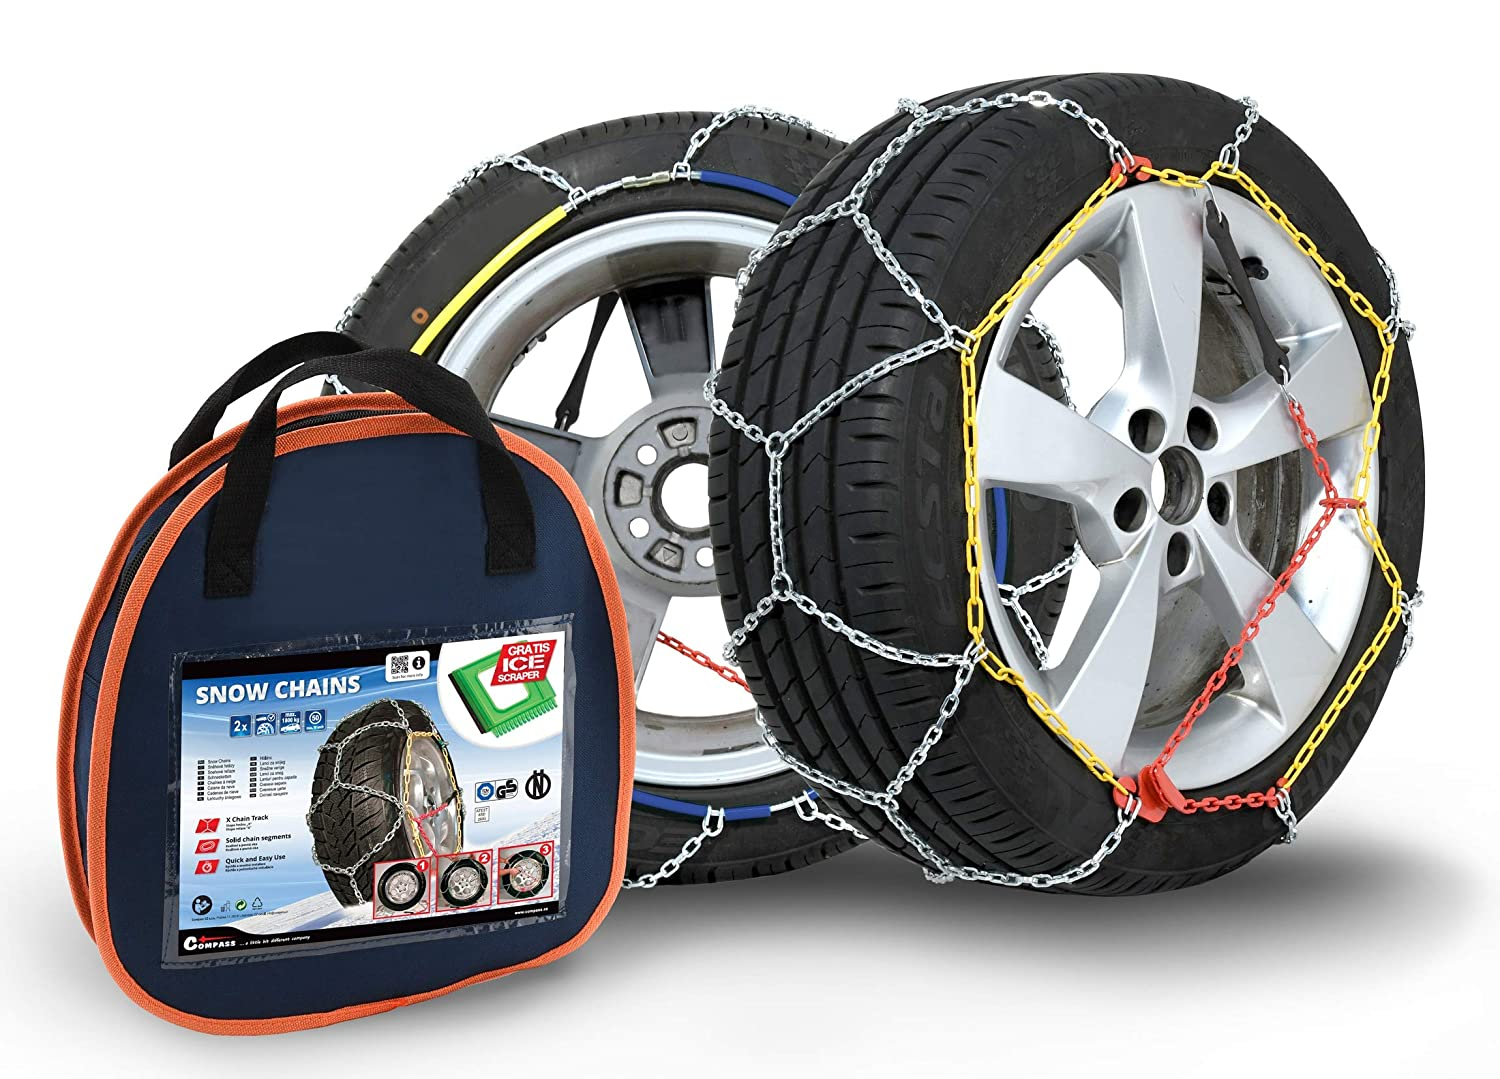 Compass Snow Chains for 225/65 R17  Tyres, TÜ V Approved, 9x17mm (130), 1  Pair TÜV Approved 1 Pair